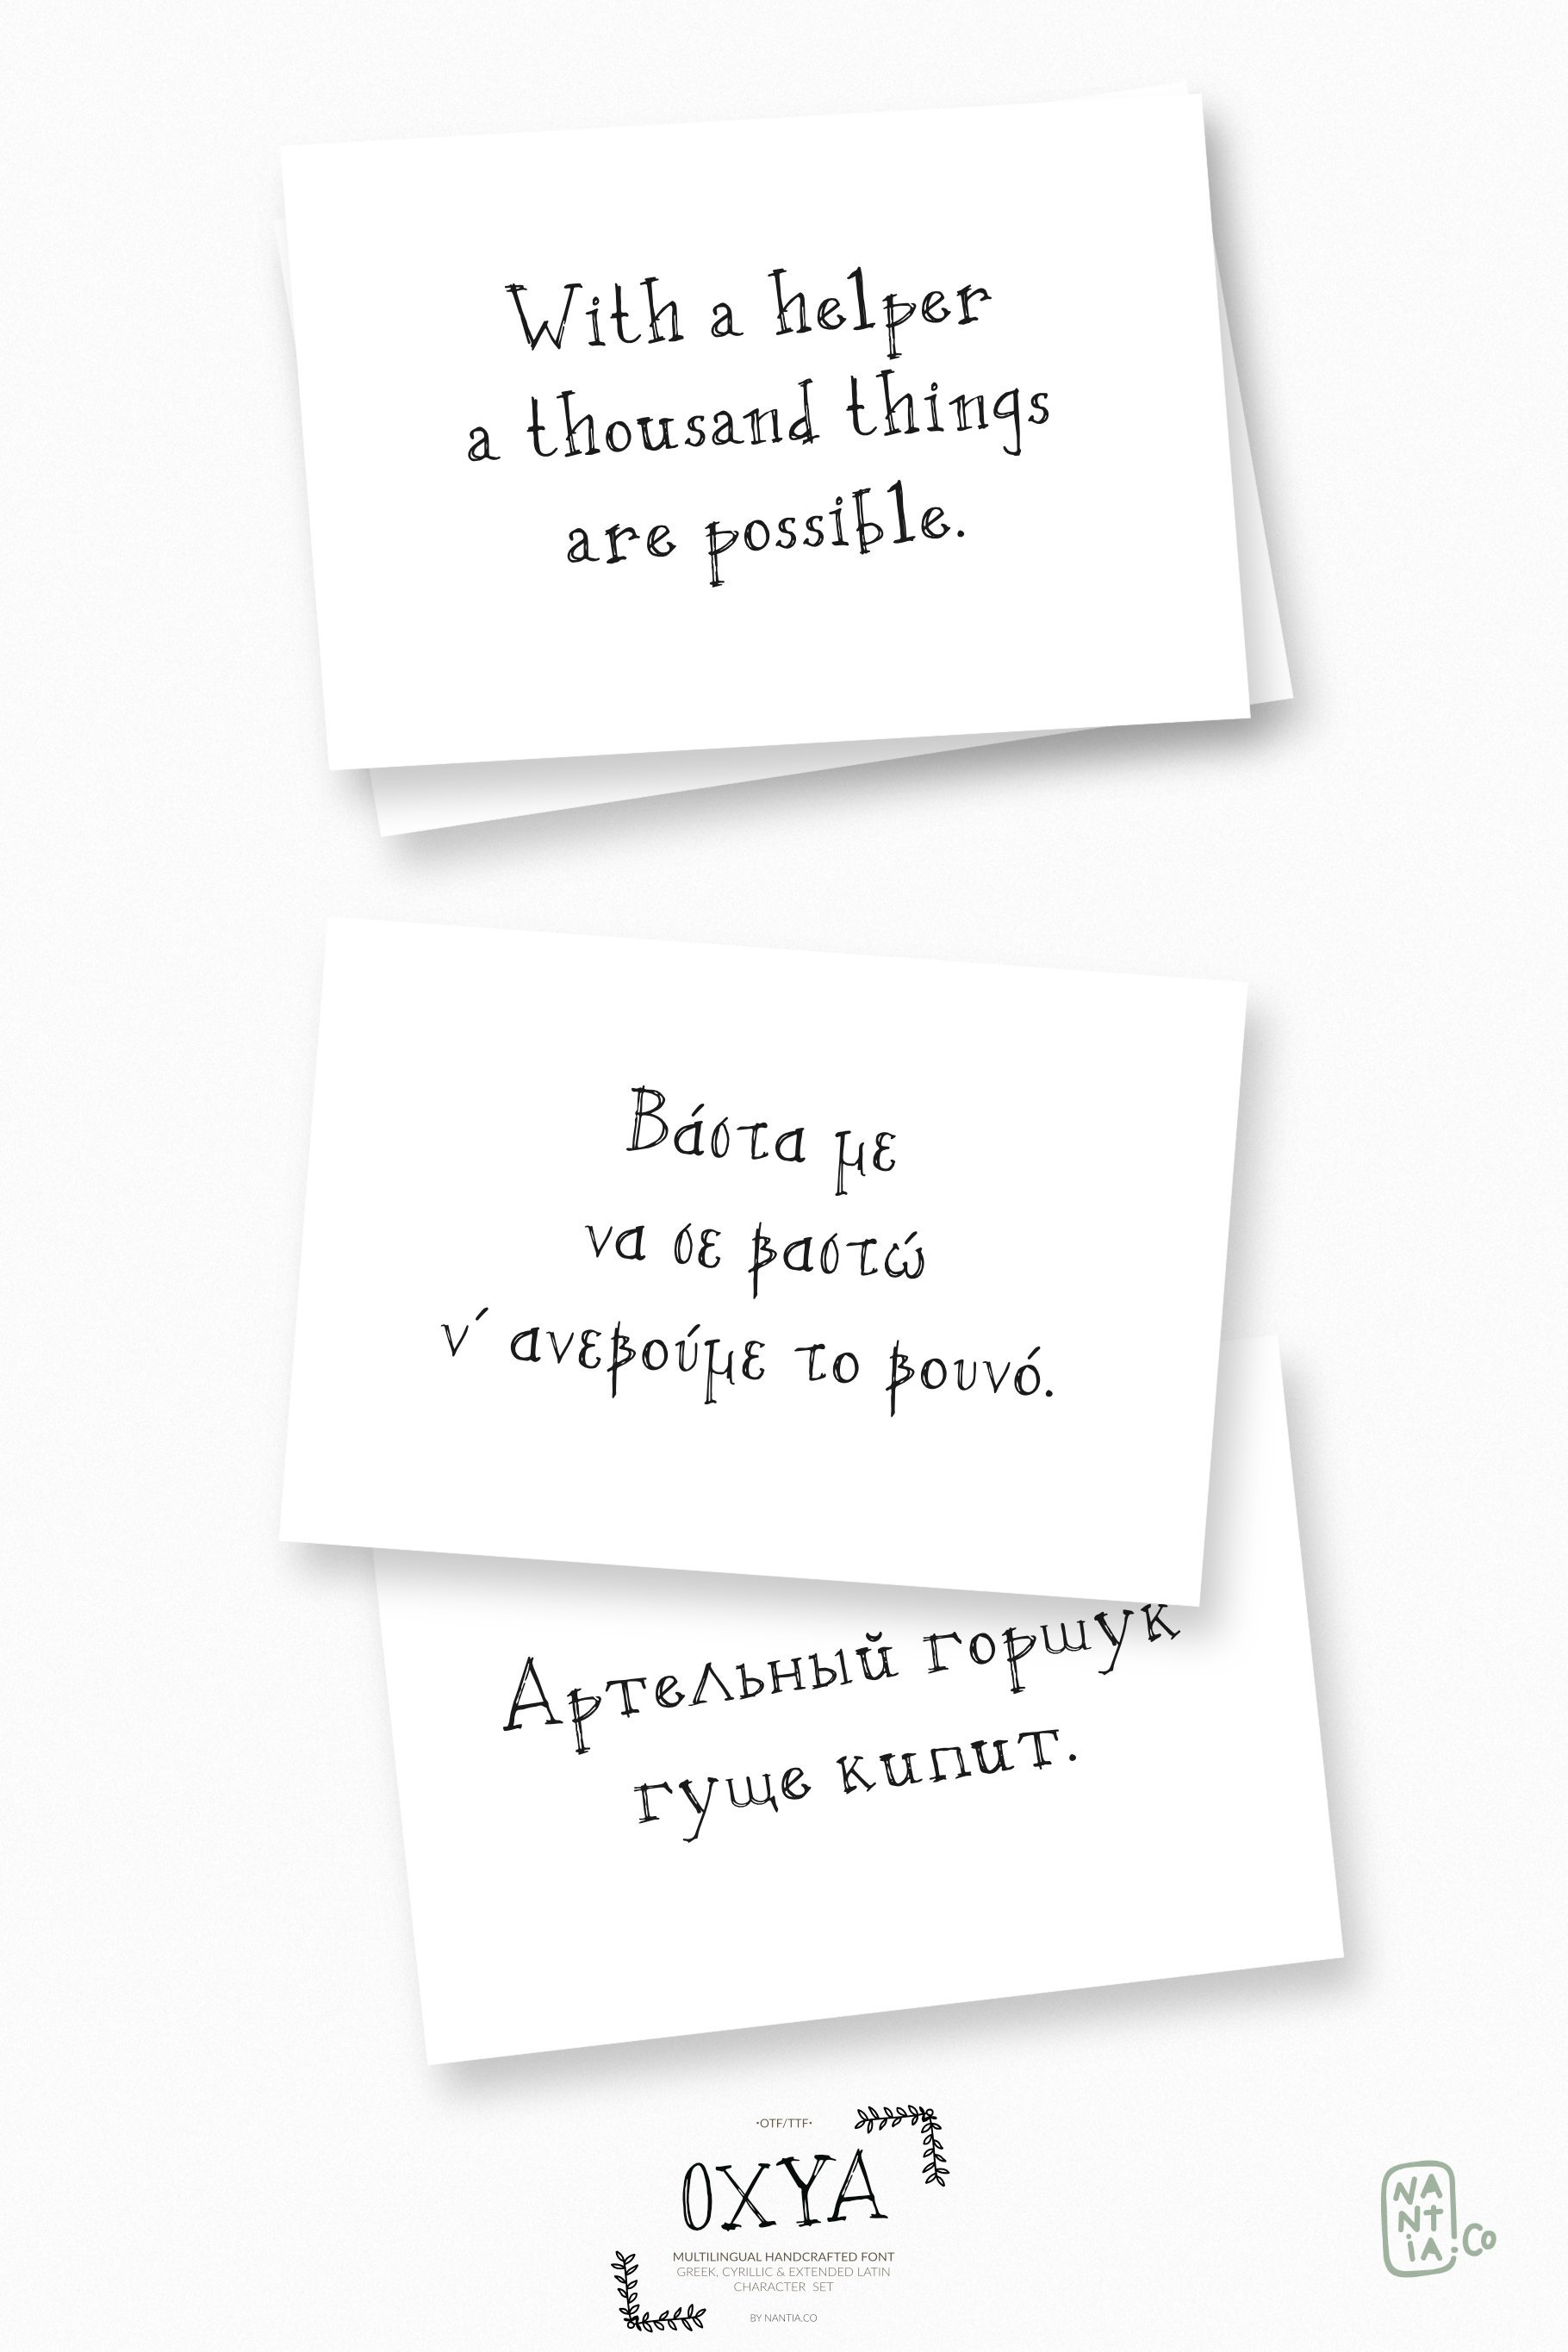 OXYA Cyrillic/Greek Handcrafted Font example image 4